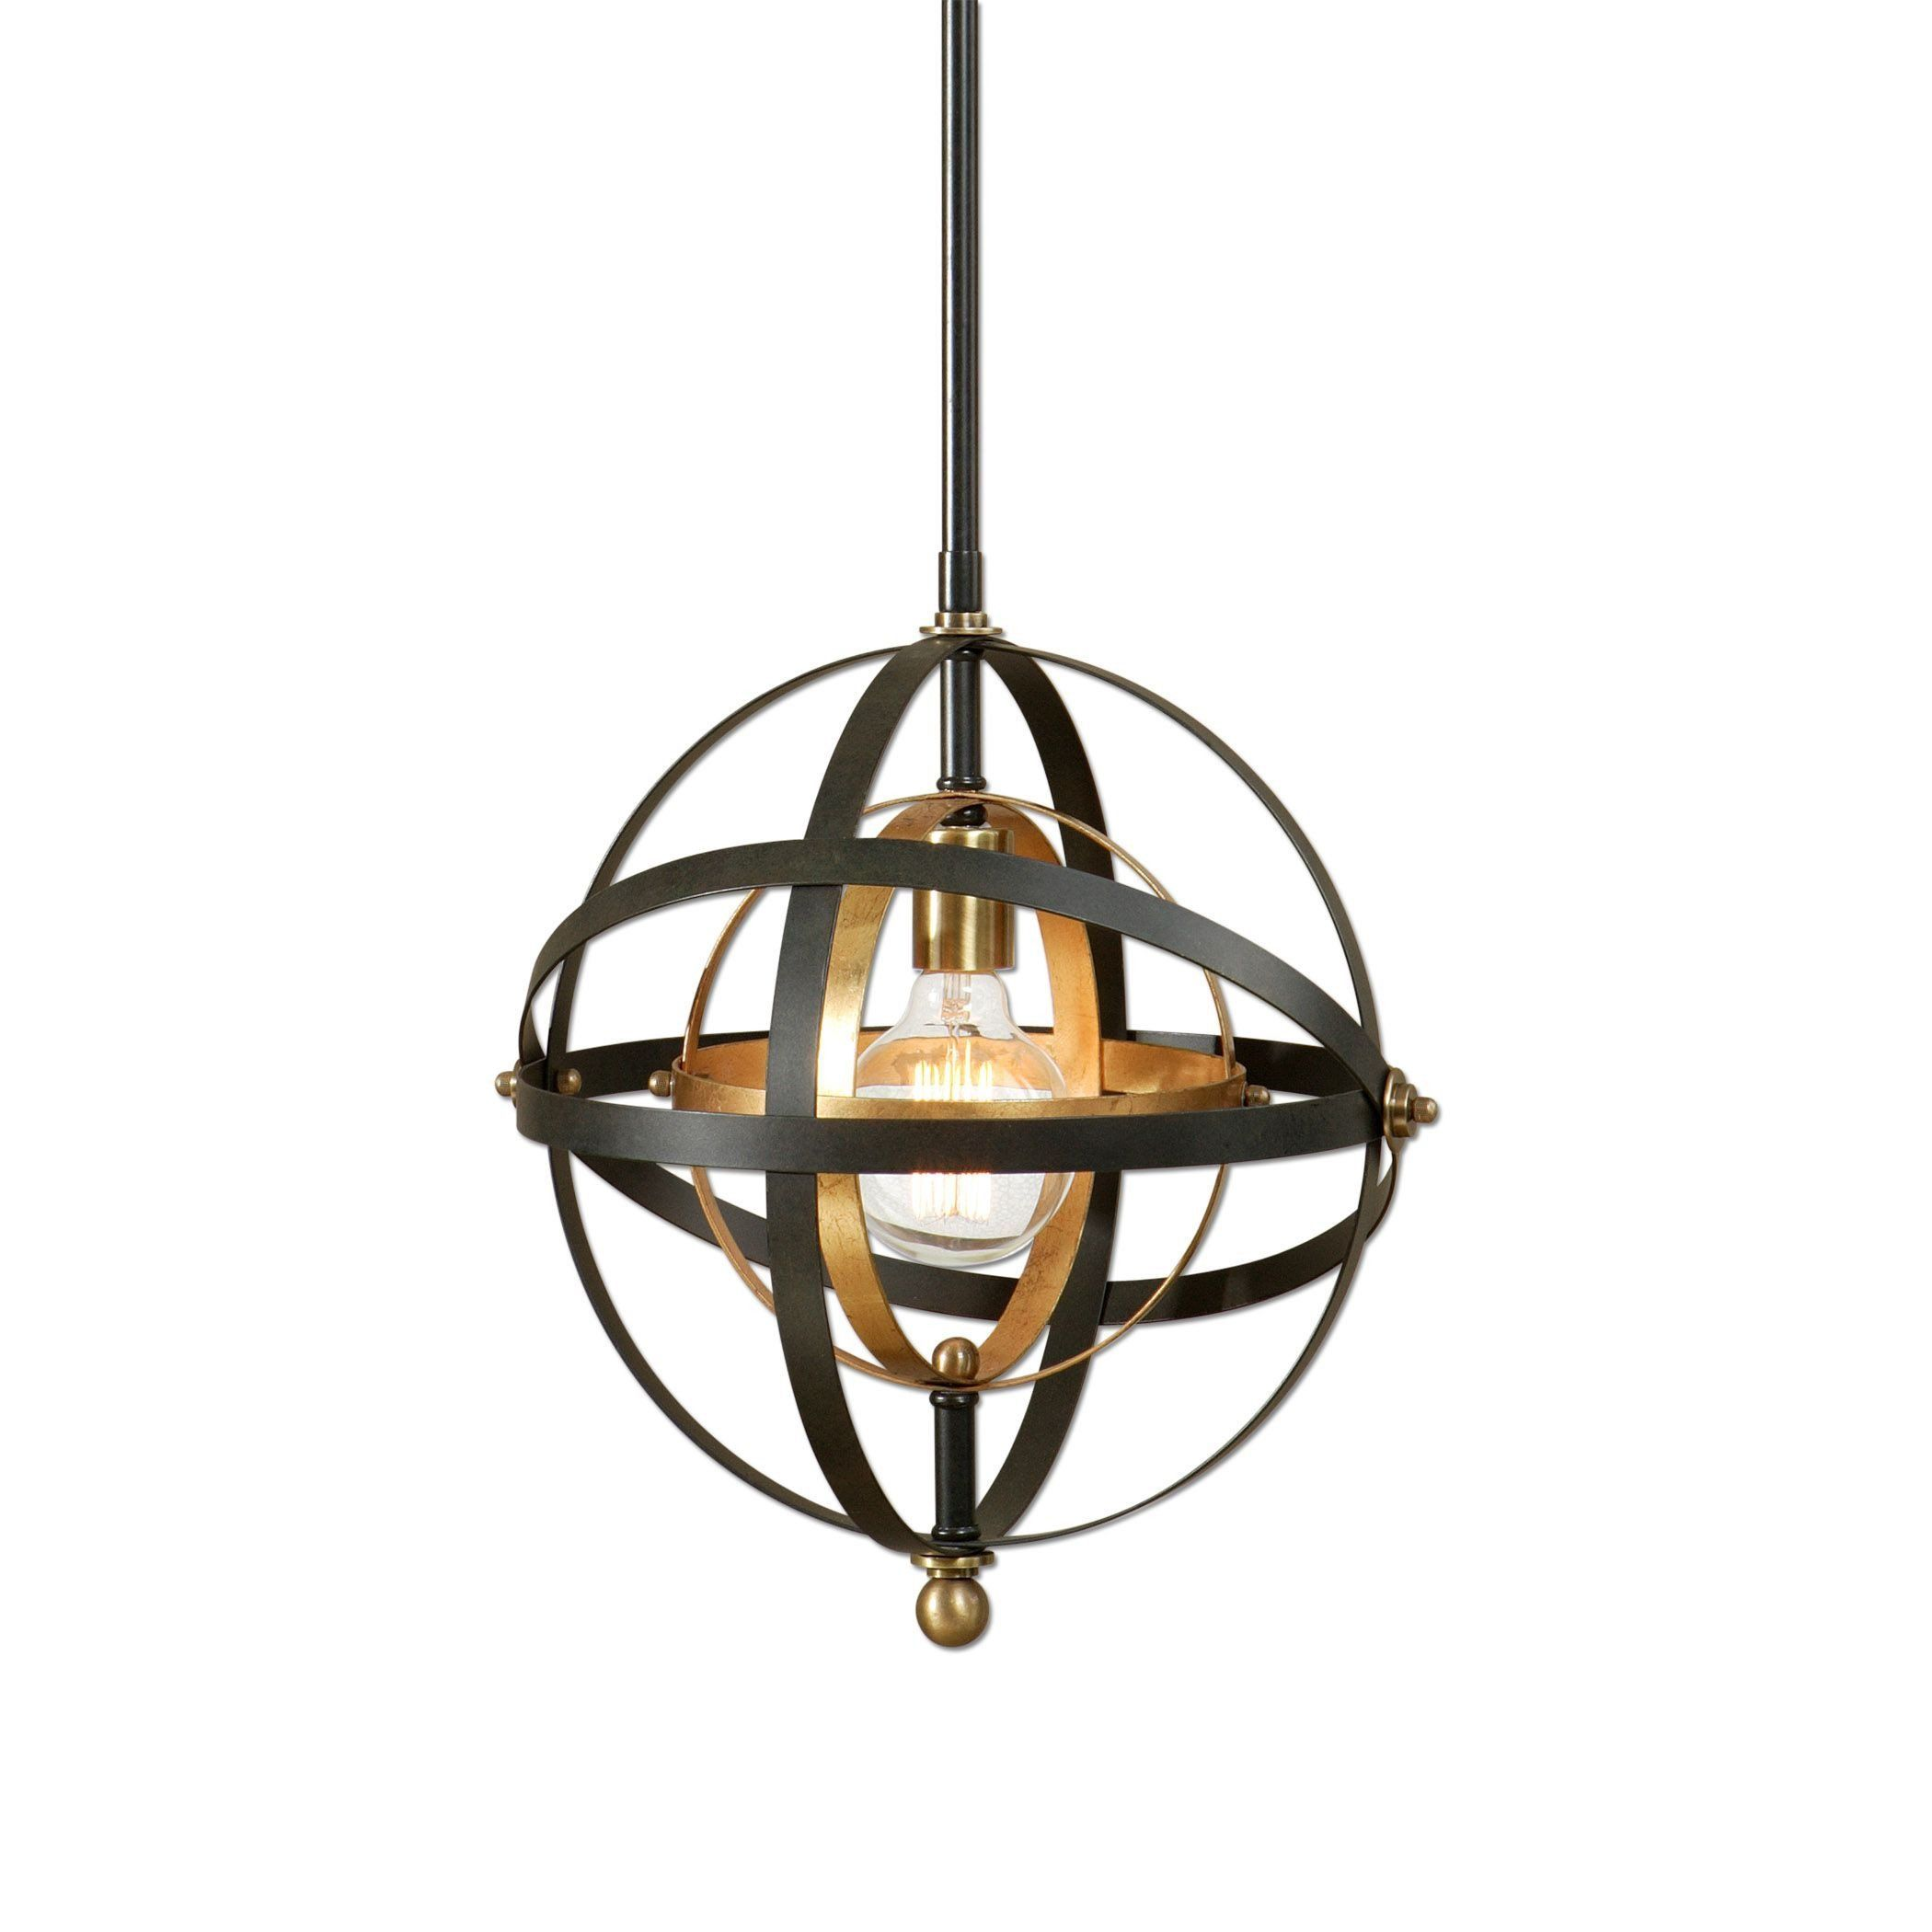 1 Light Sphere Pendant Lighting Fixture by Uttermost